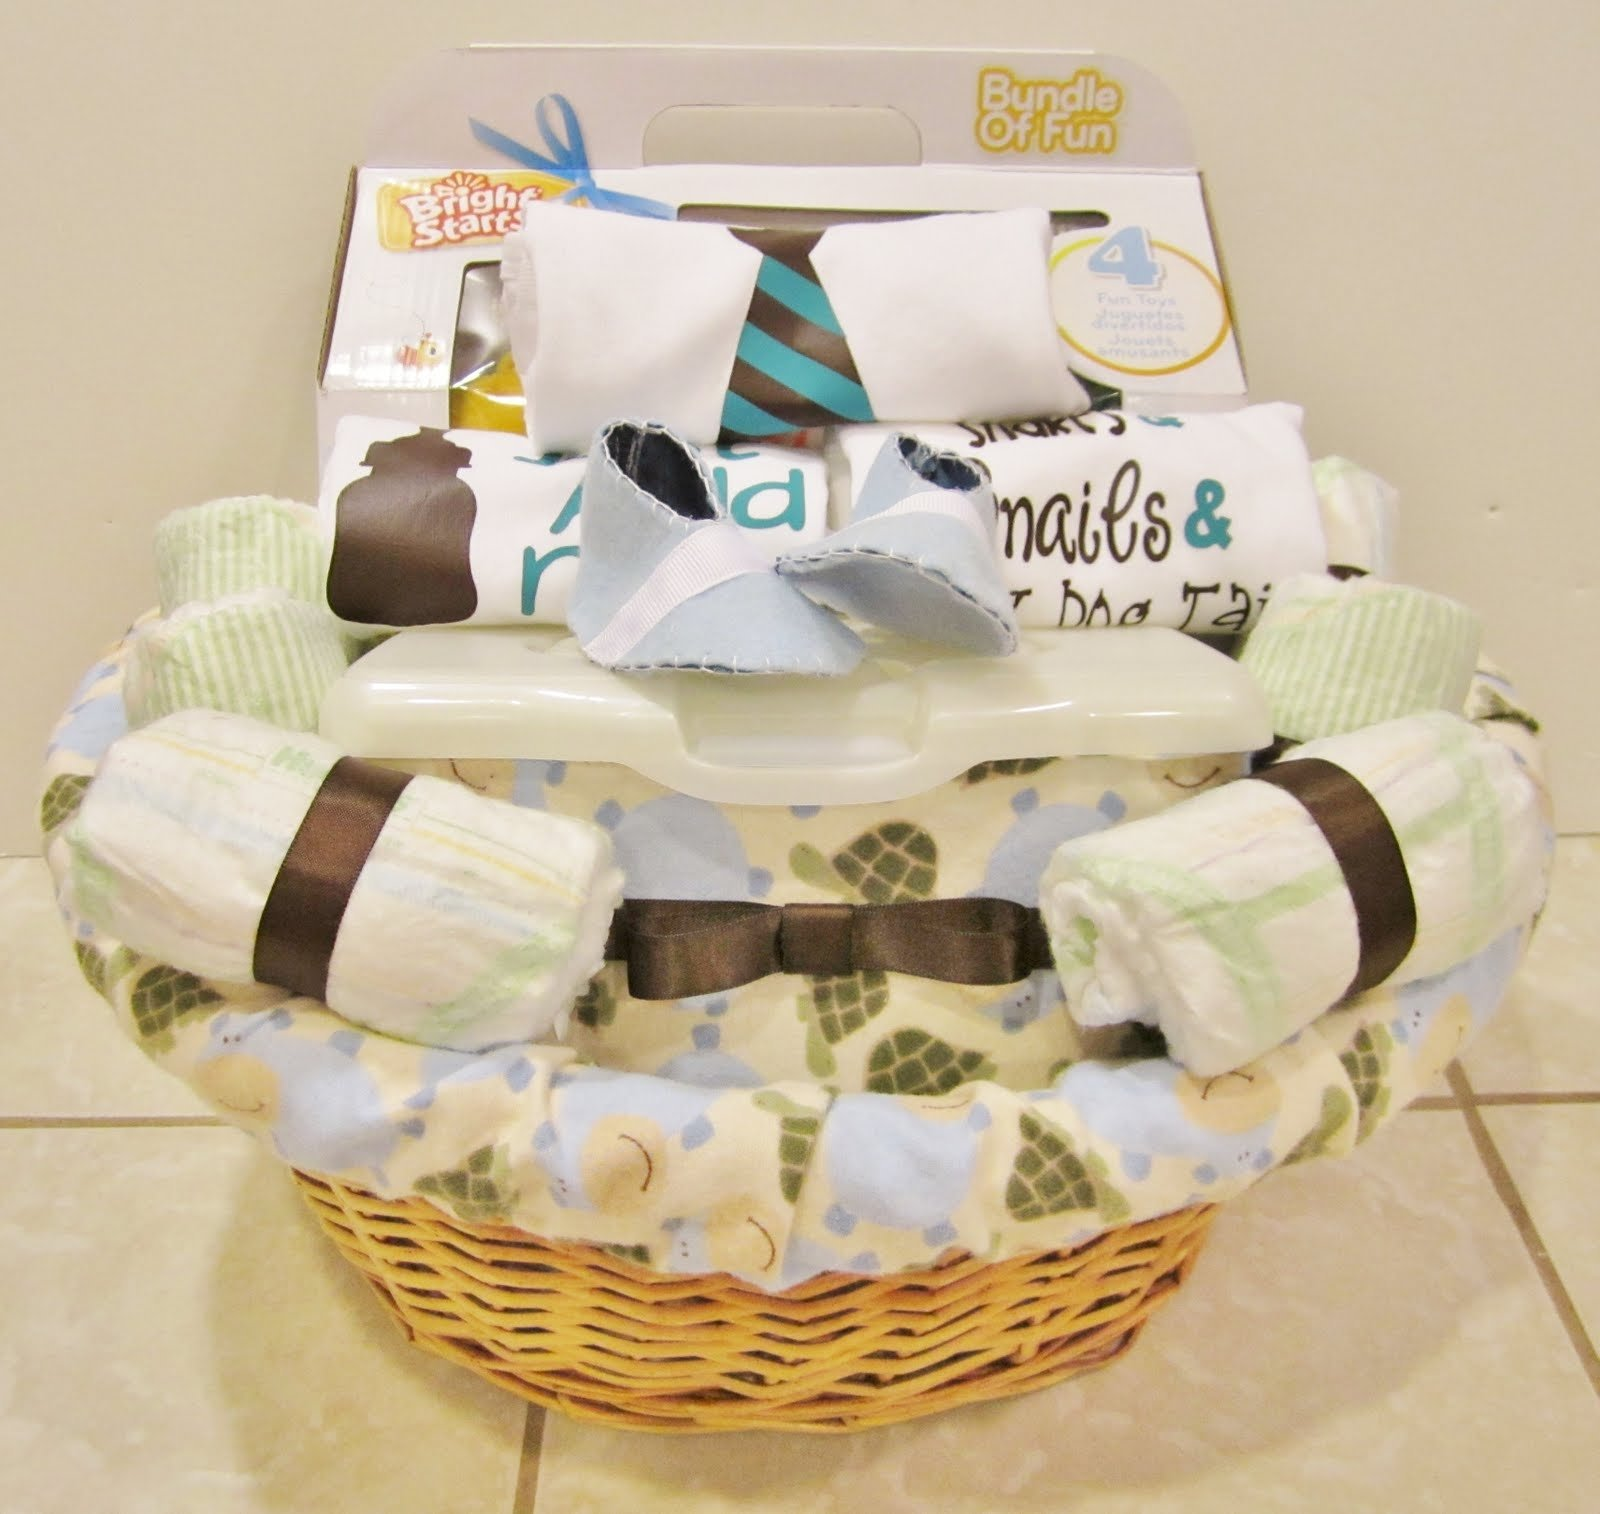 10 Stunning Baby Gift Ideas For Boys baby shower gift ideas for boys in basket baby shower ideas gallery 2020